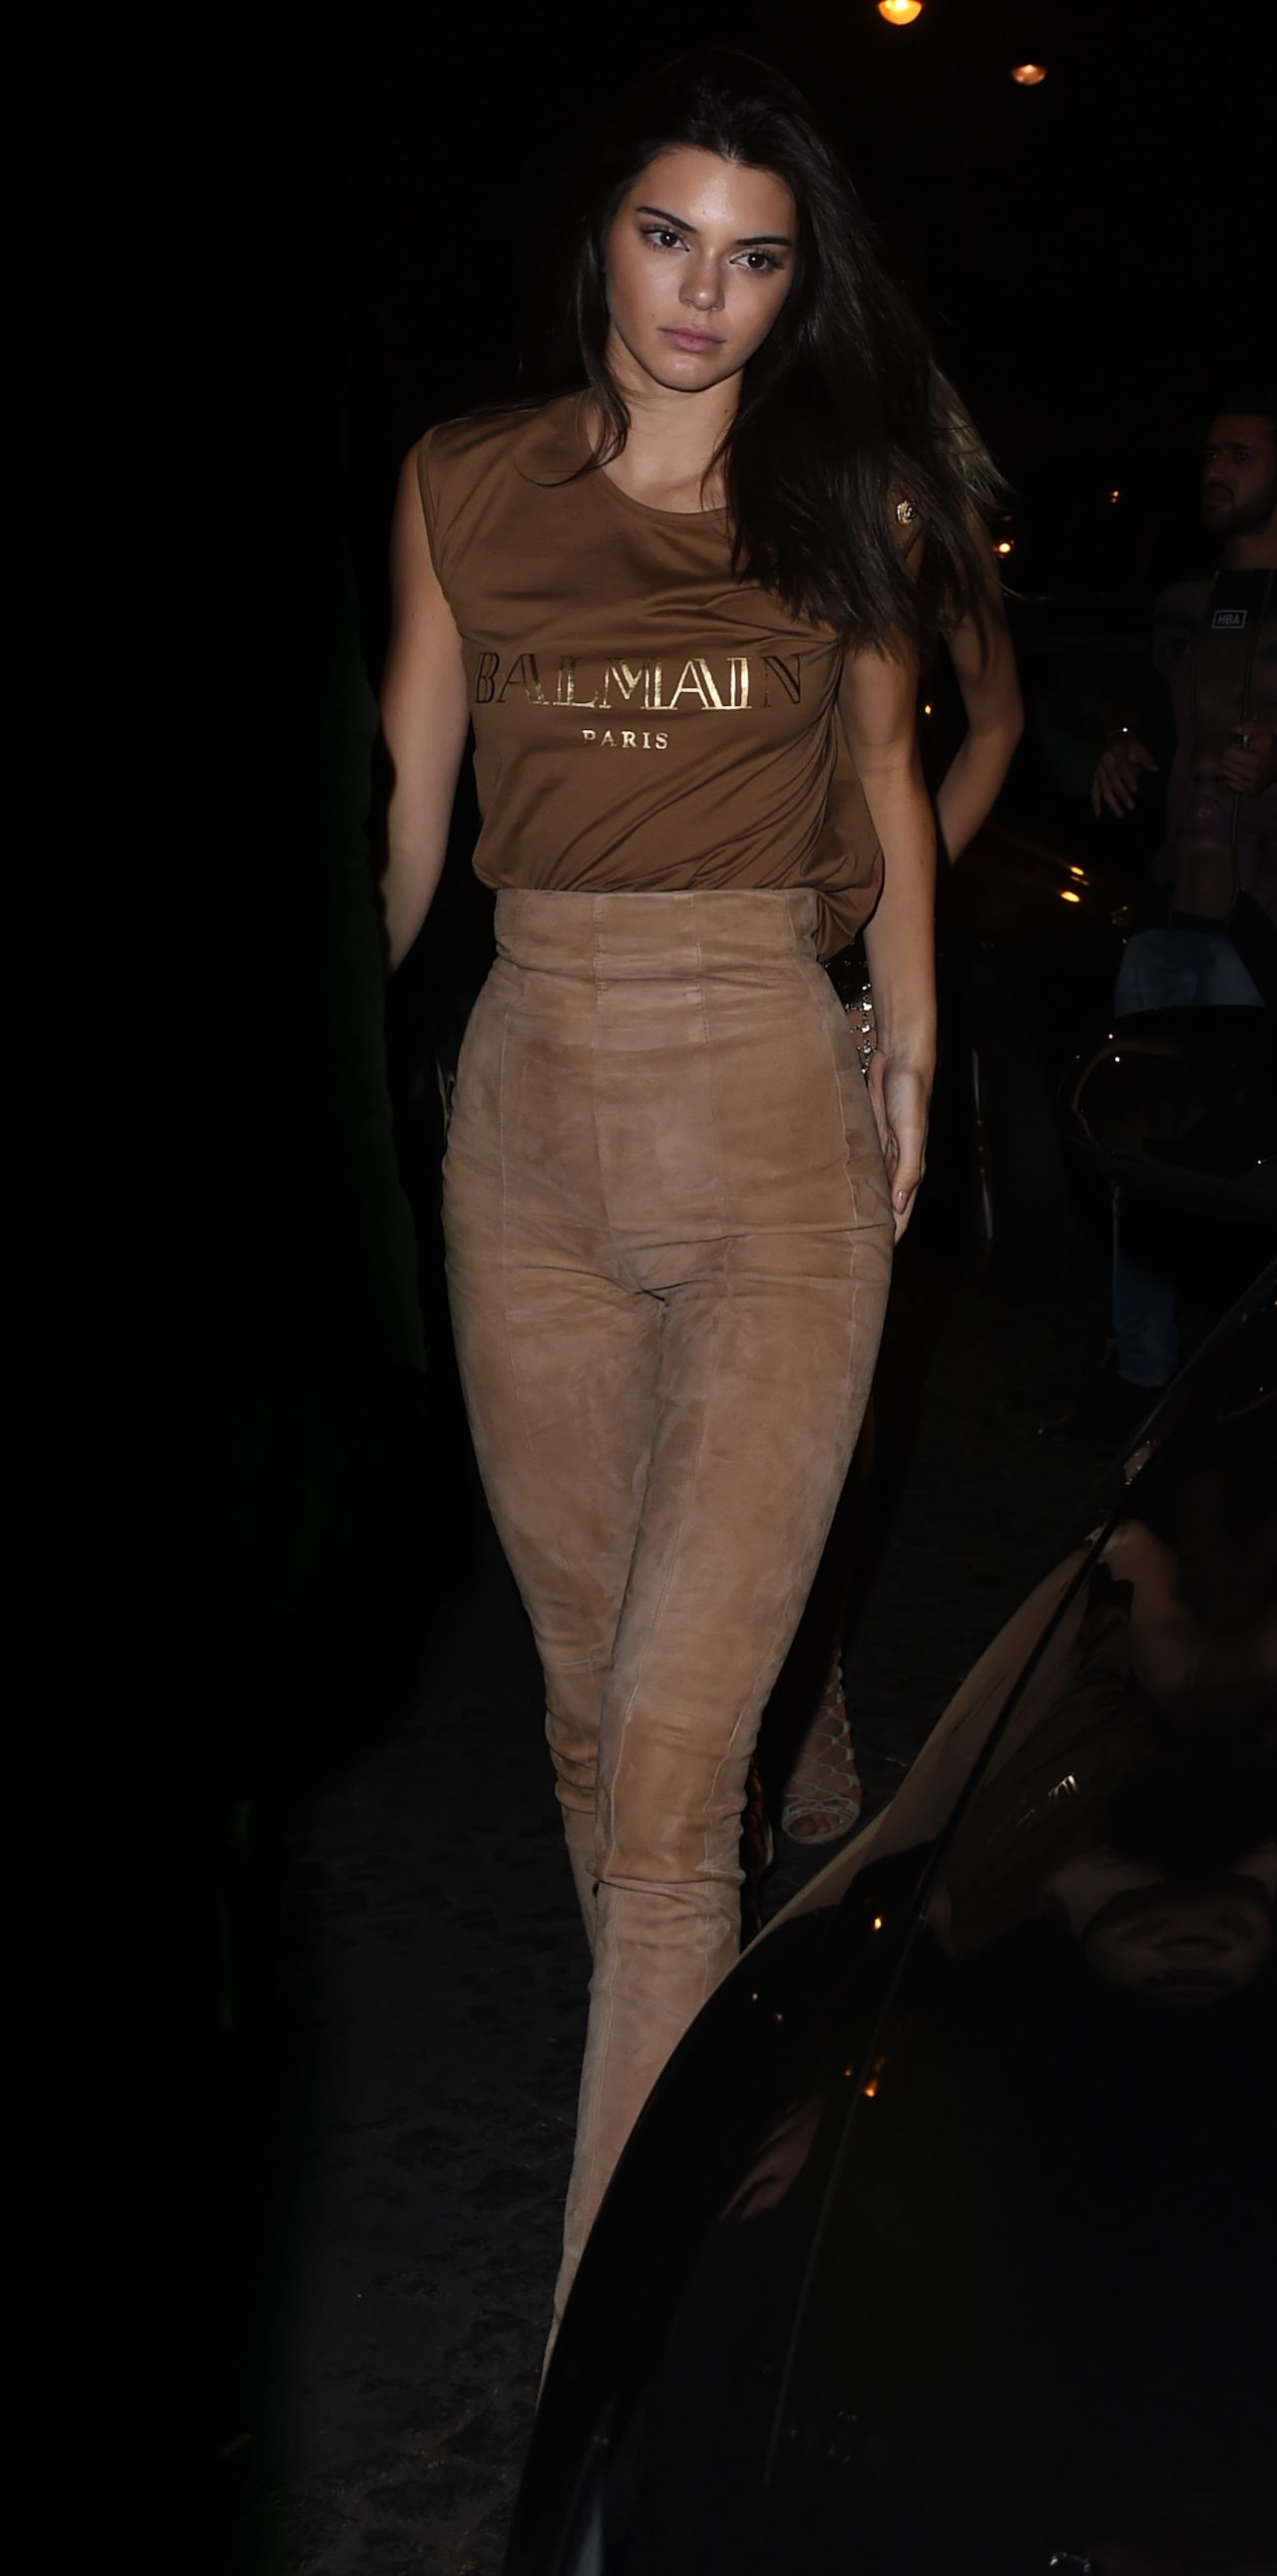 kendall-jenner-night-out-style-at-le-six-seven-in-paris-october-2015_4